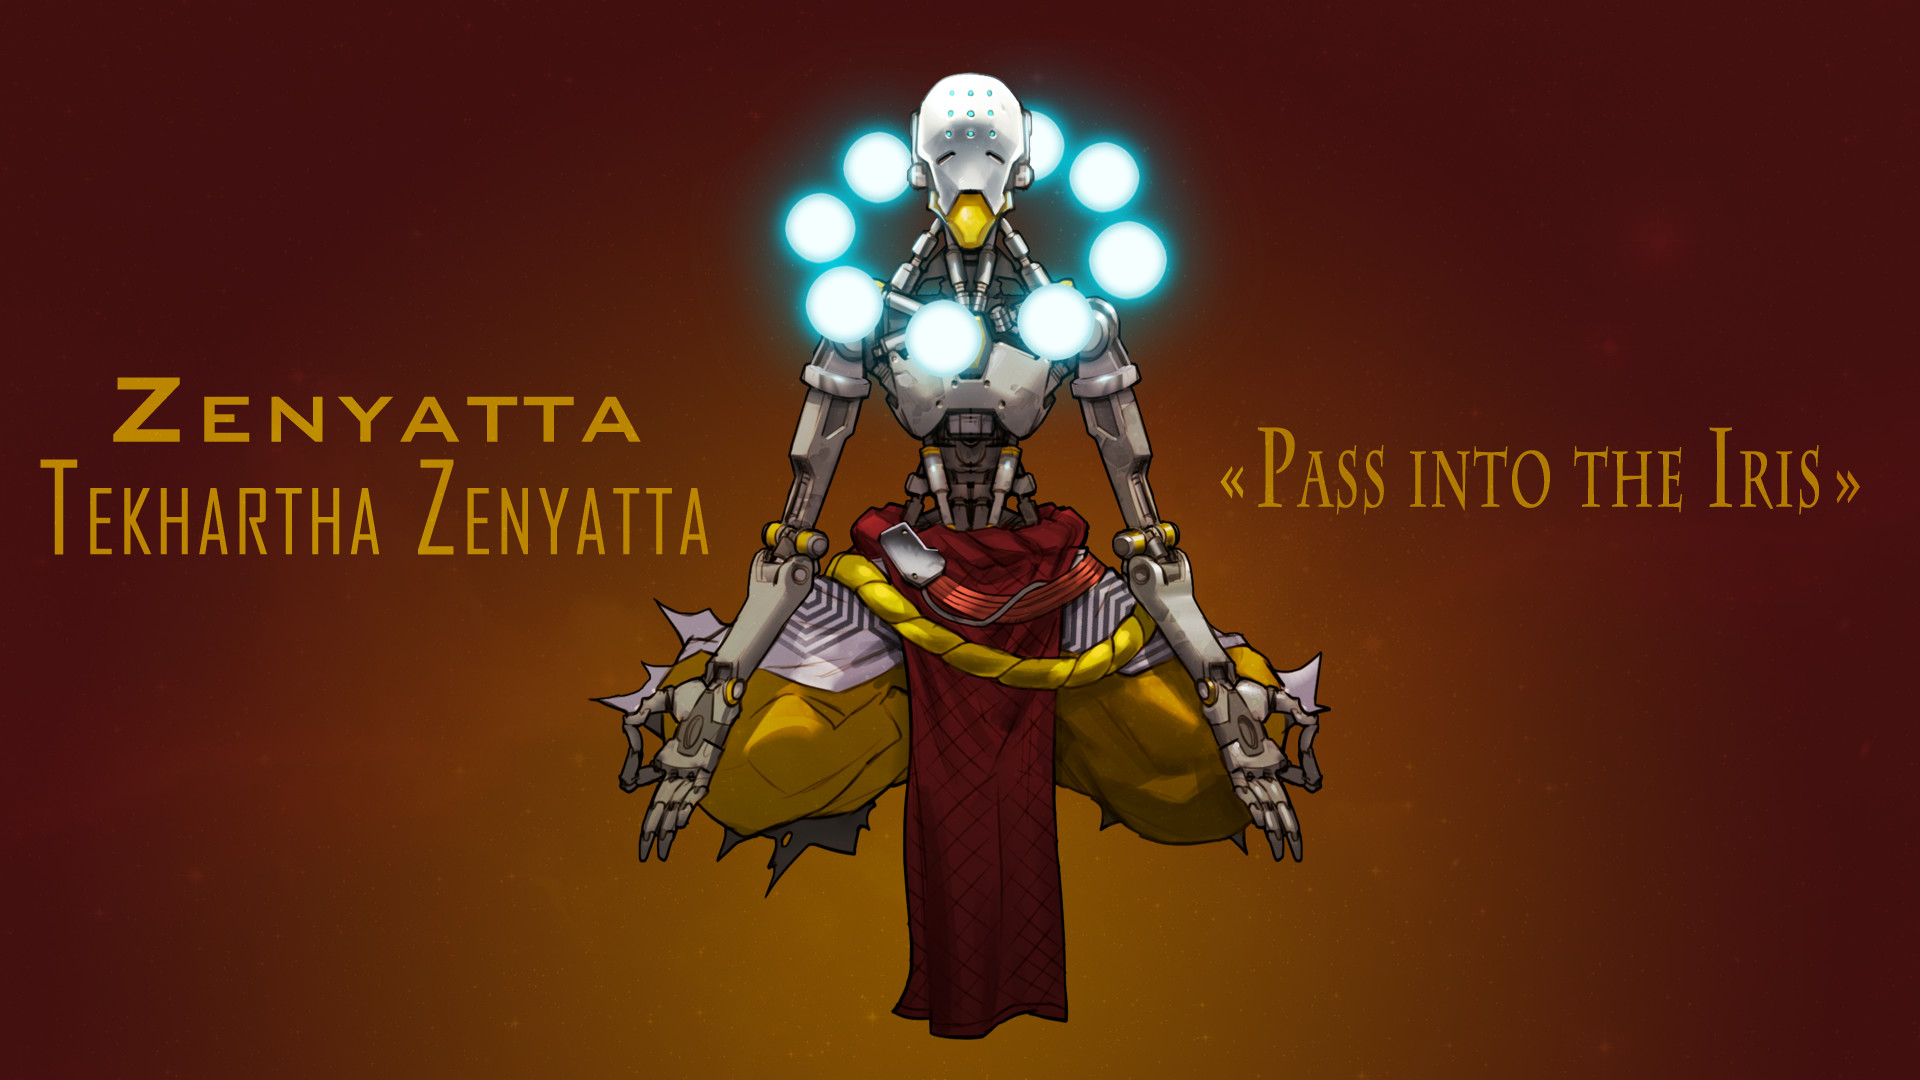 1920x1080 Zenyatta Wallpaper (Overwatch) by SuperBrioche Zenyatta Wallpaper  (Overwatch) by SuperBrioche